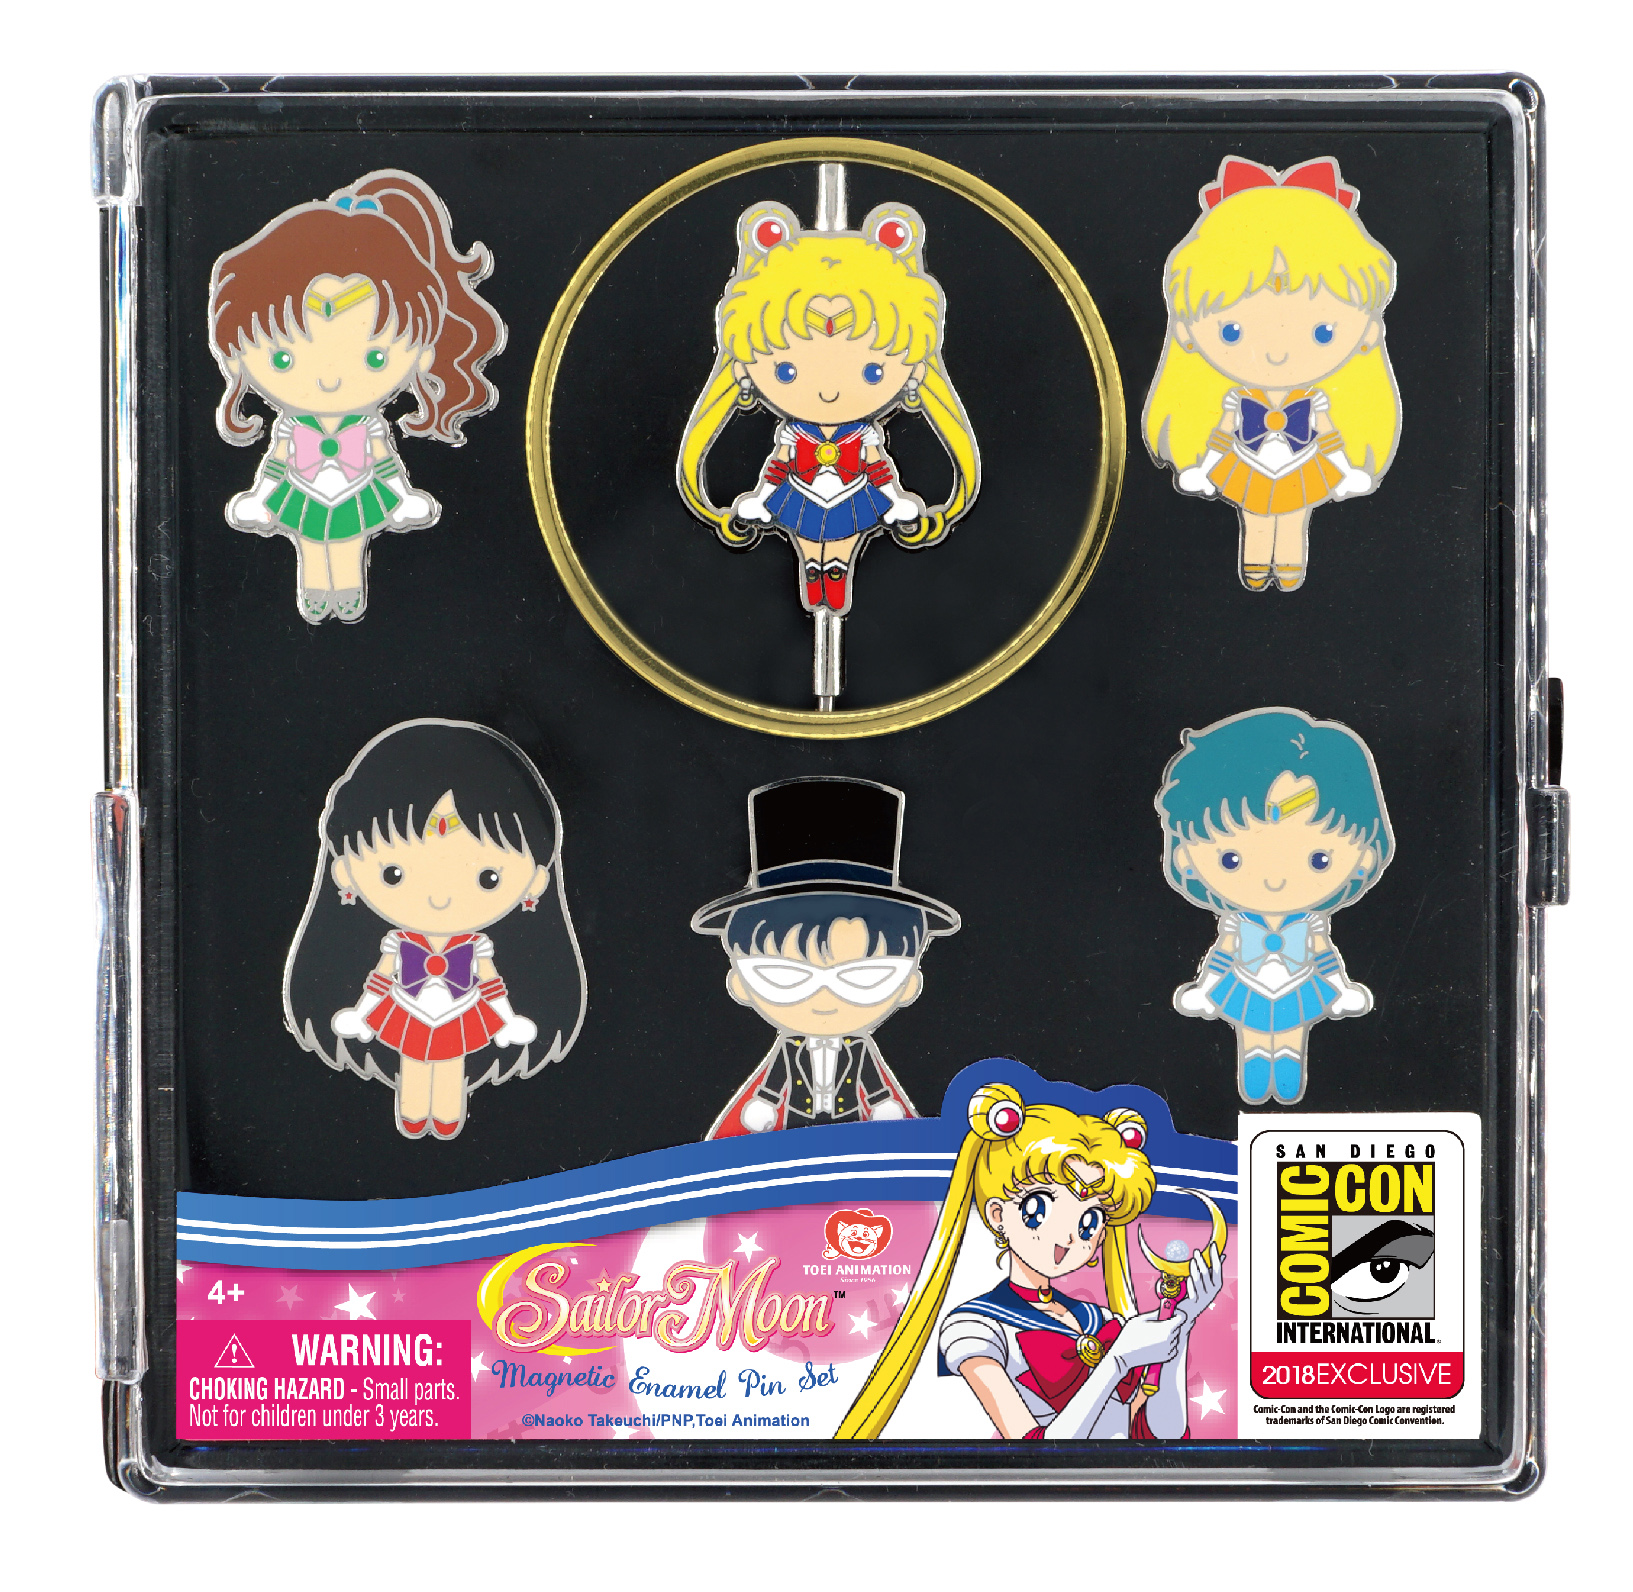 Harry Potter And Sailor Moon Get Monogram SDCC 2018